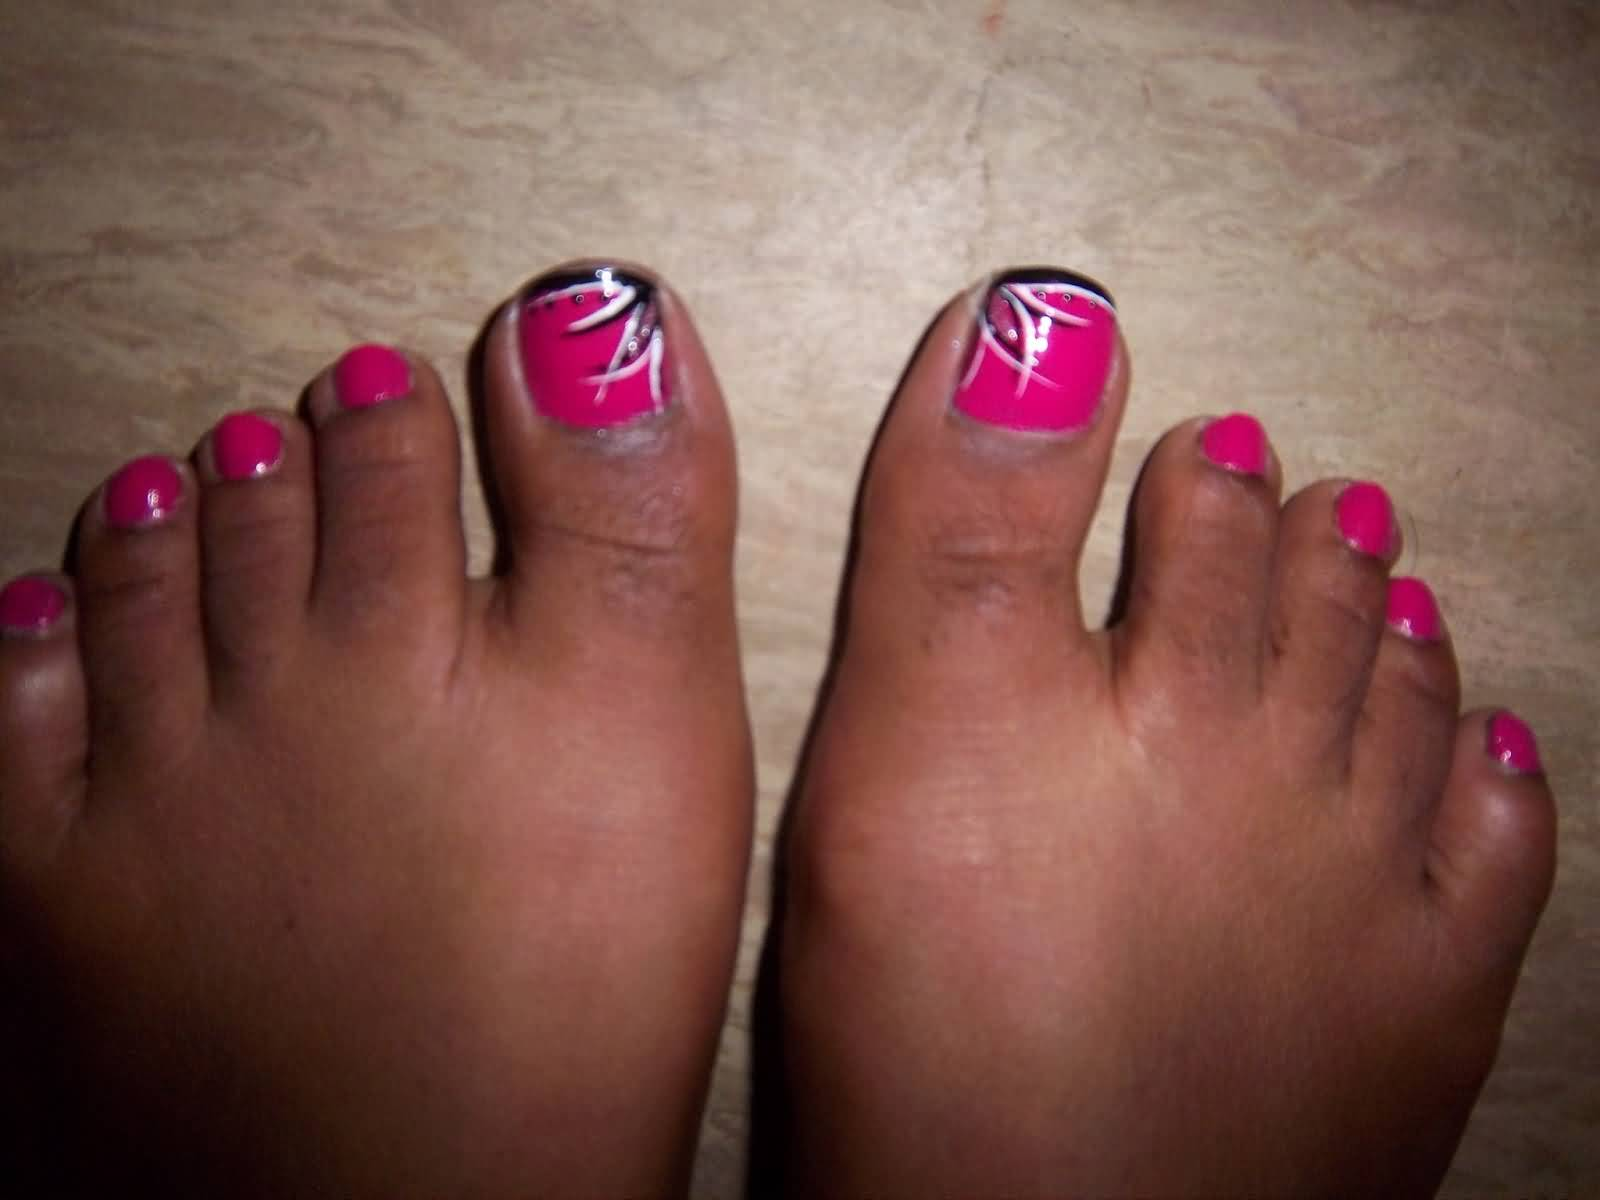 Black nail designs for toes best nails 2018 40 pink toe nail art design ideas prinsesfo Image collections